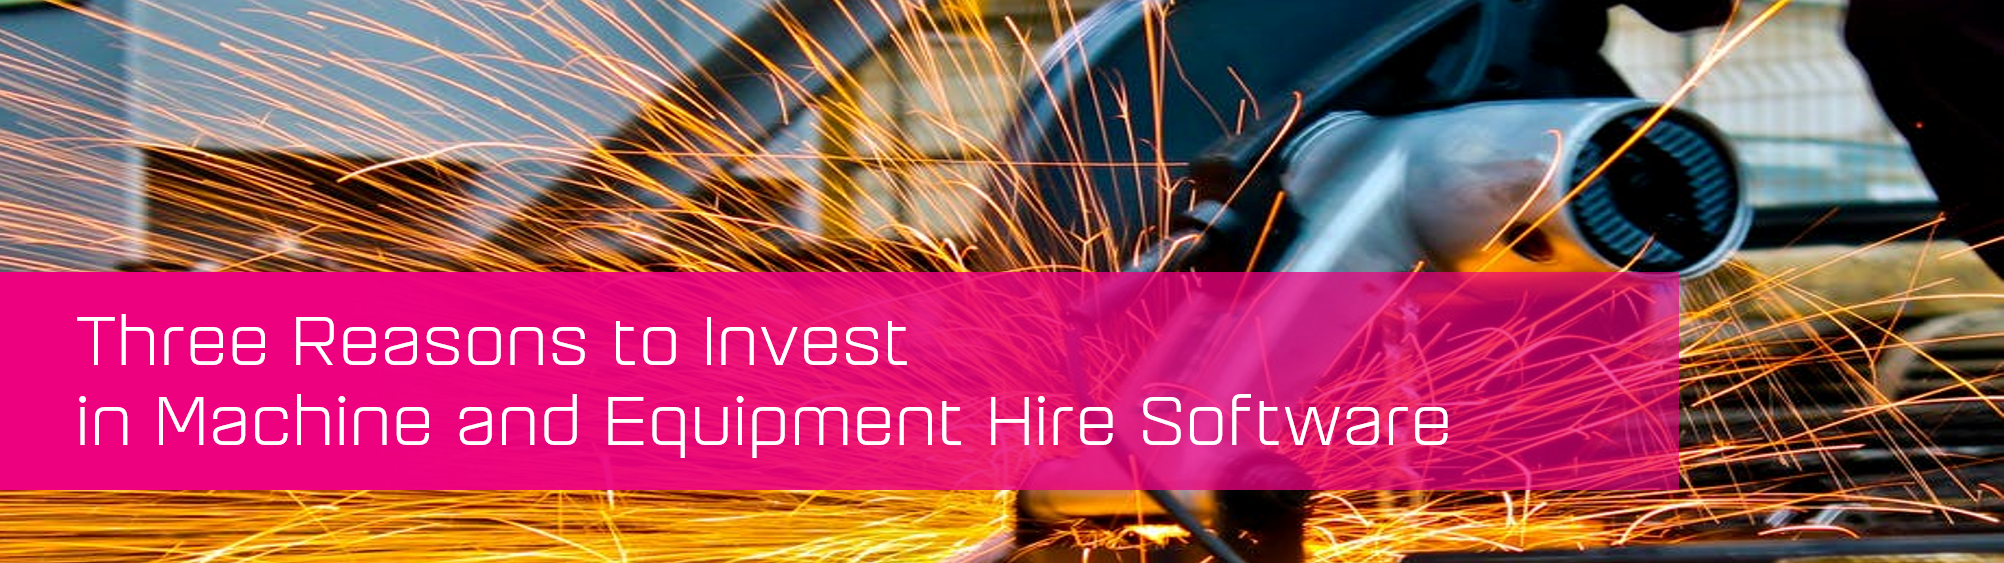 KCS SA - Blog - 3 reasons to invest in hire software banner